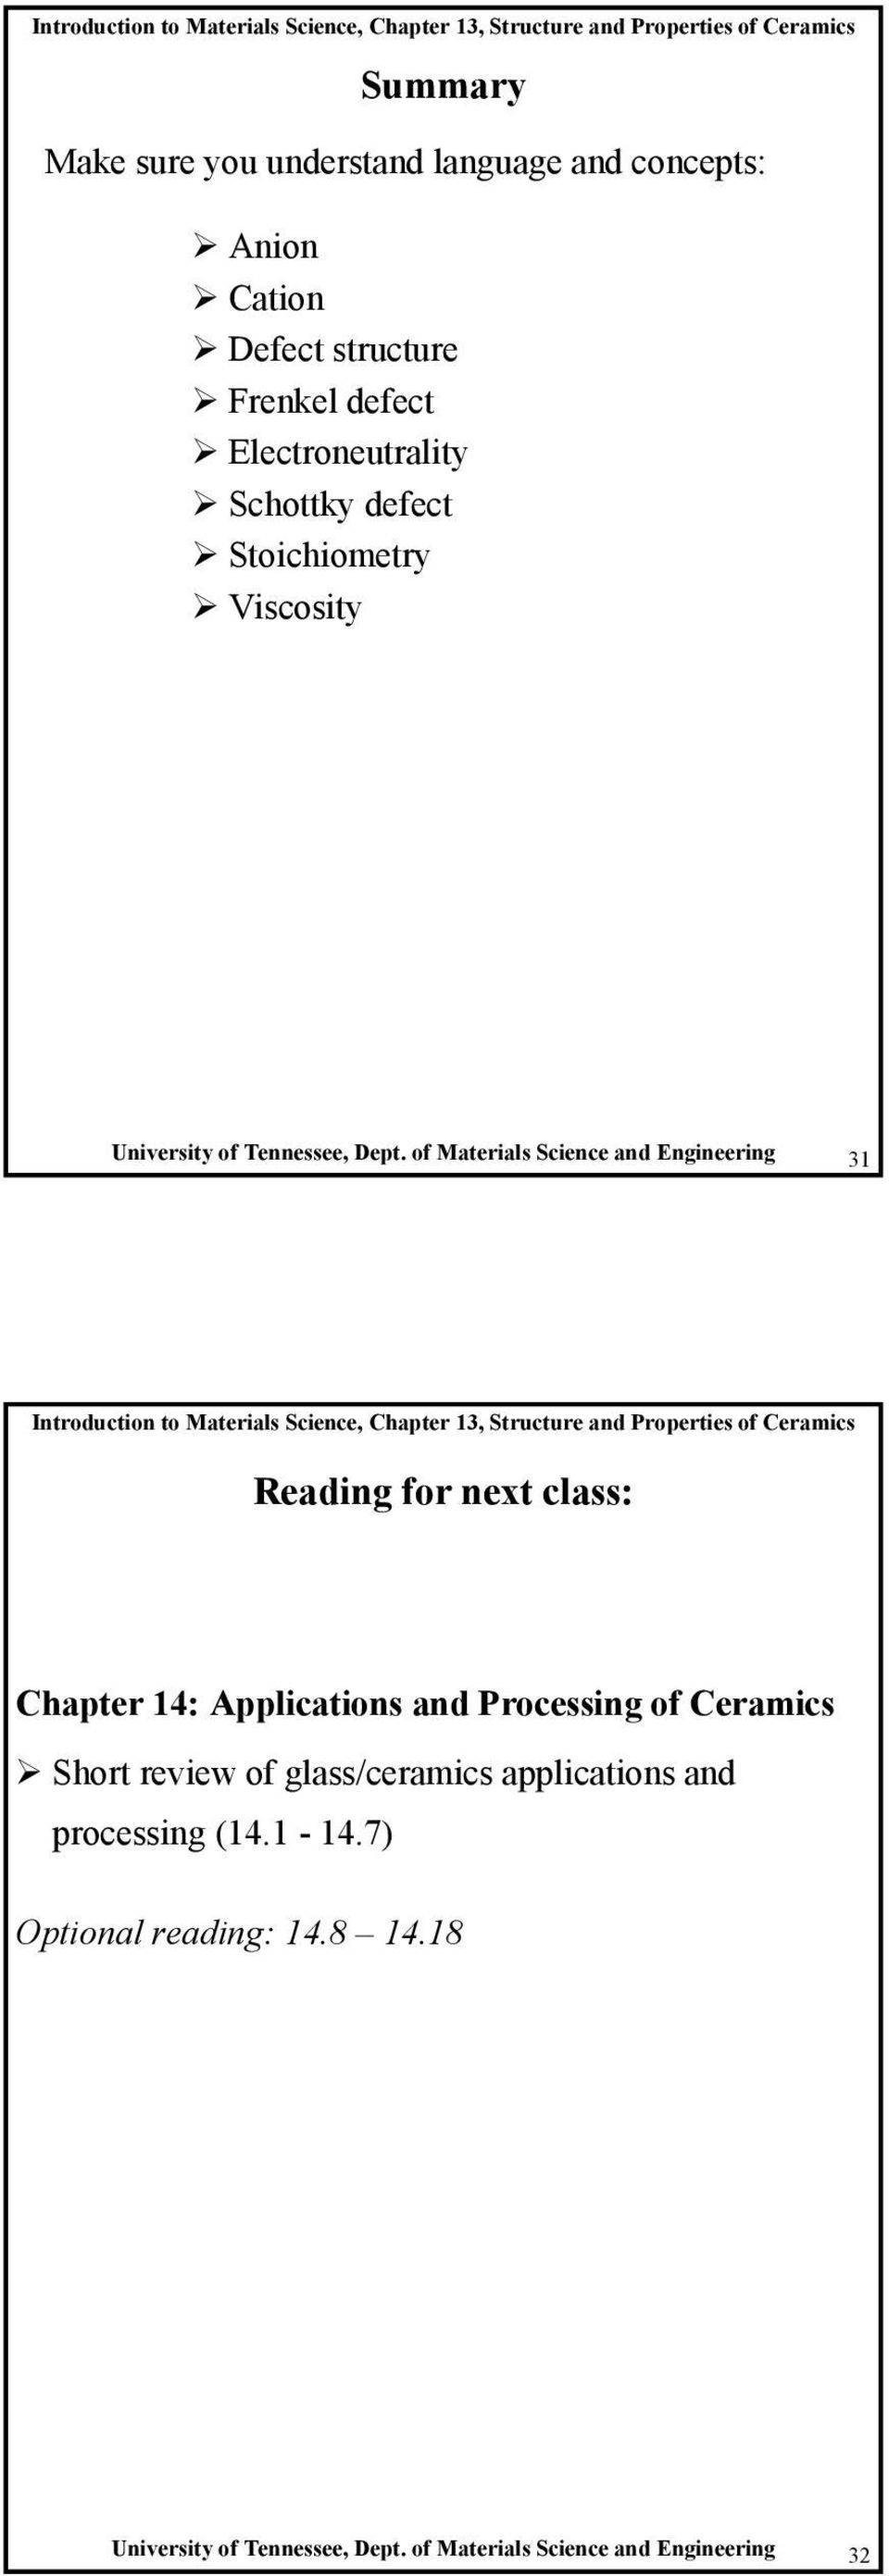 Introduction to Materials Science, Chapter 7, Structure and